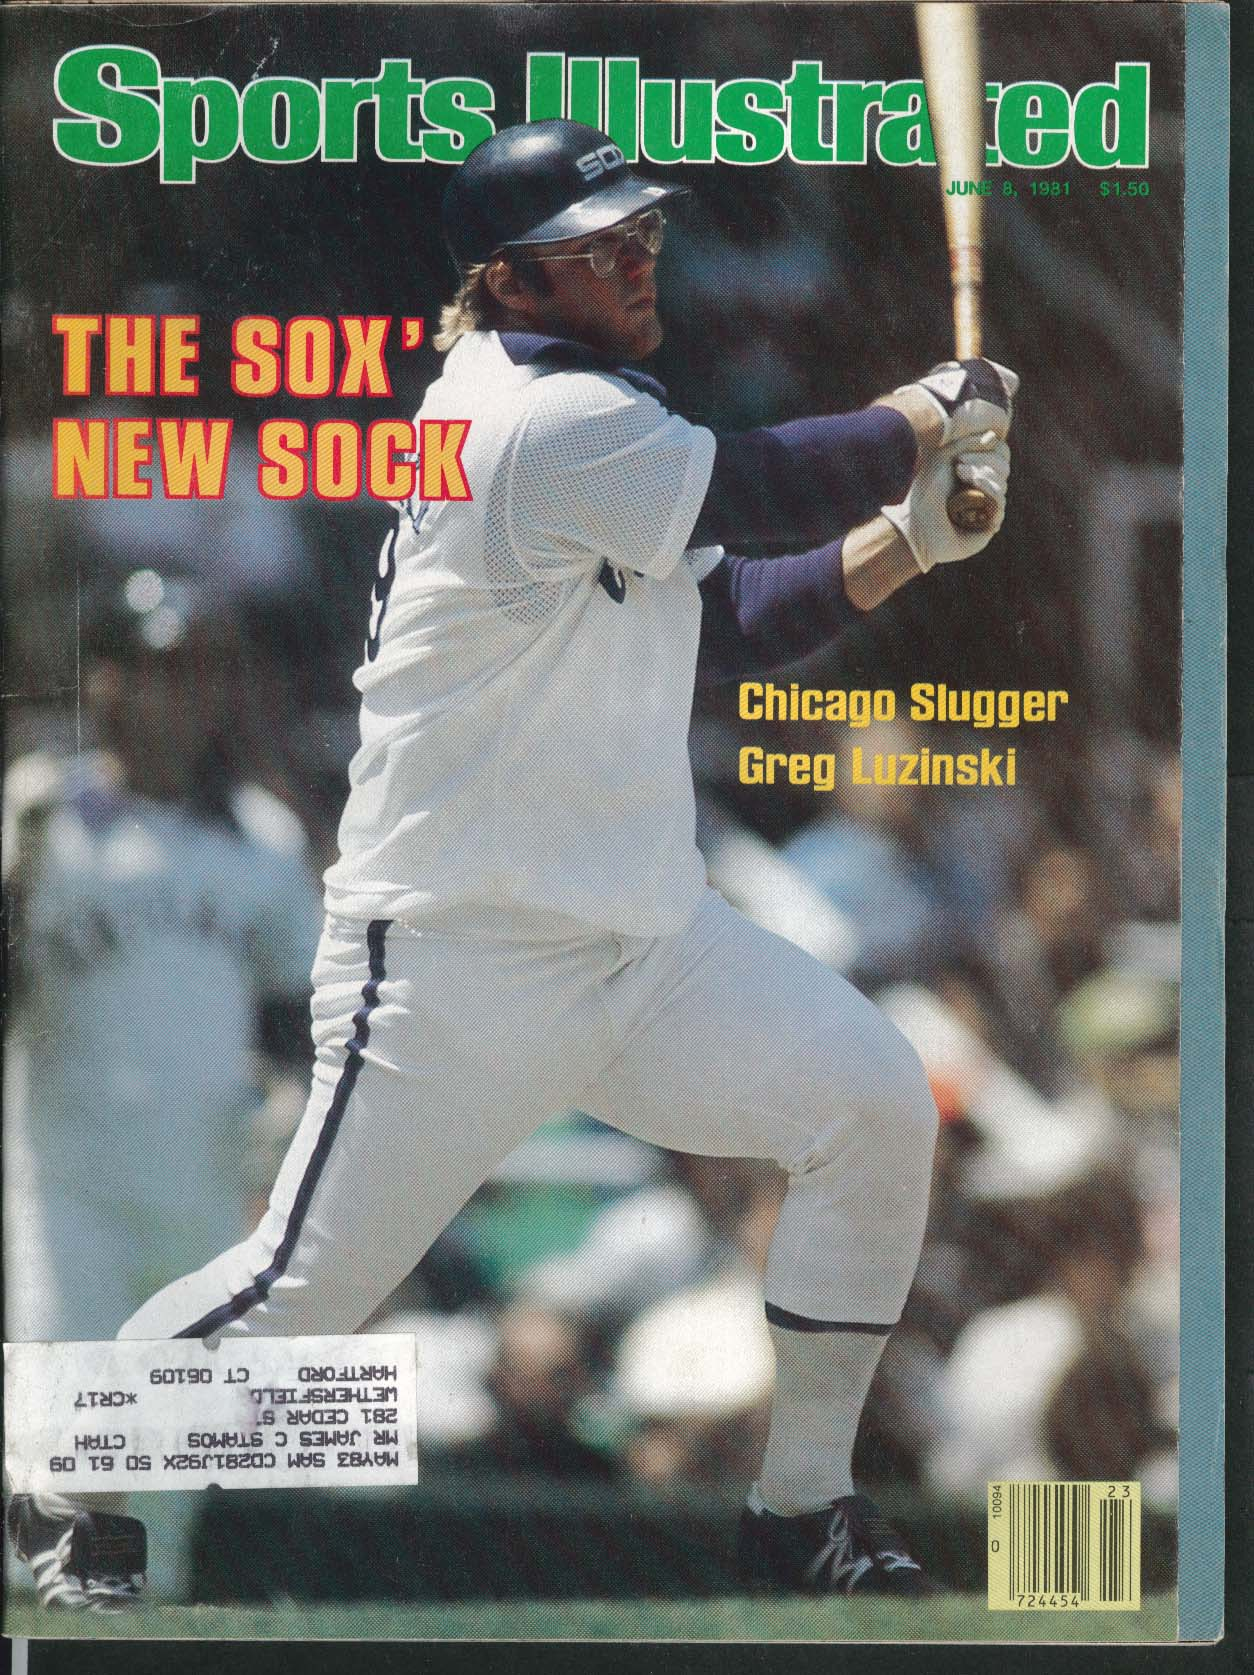 SPORTS ILLUSTRATED Greg Luzinski Carlton Fisk Mark Aquirre Ben Oglivie 6/8 1981